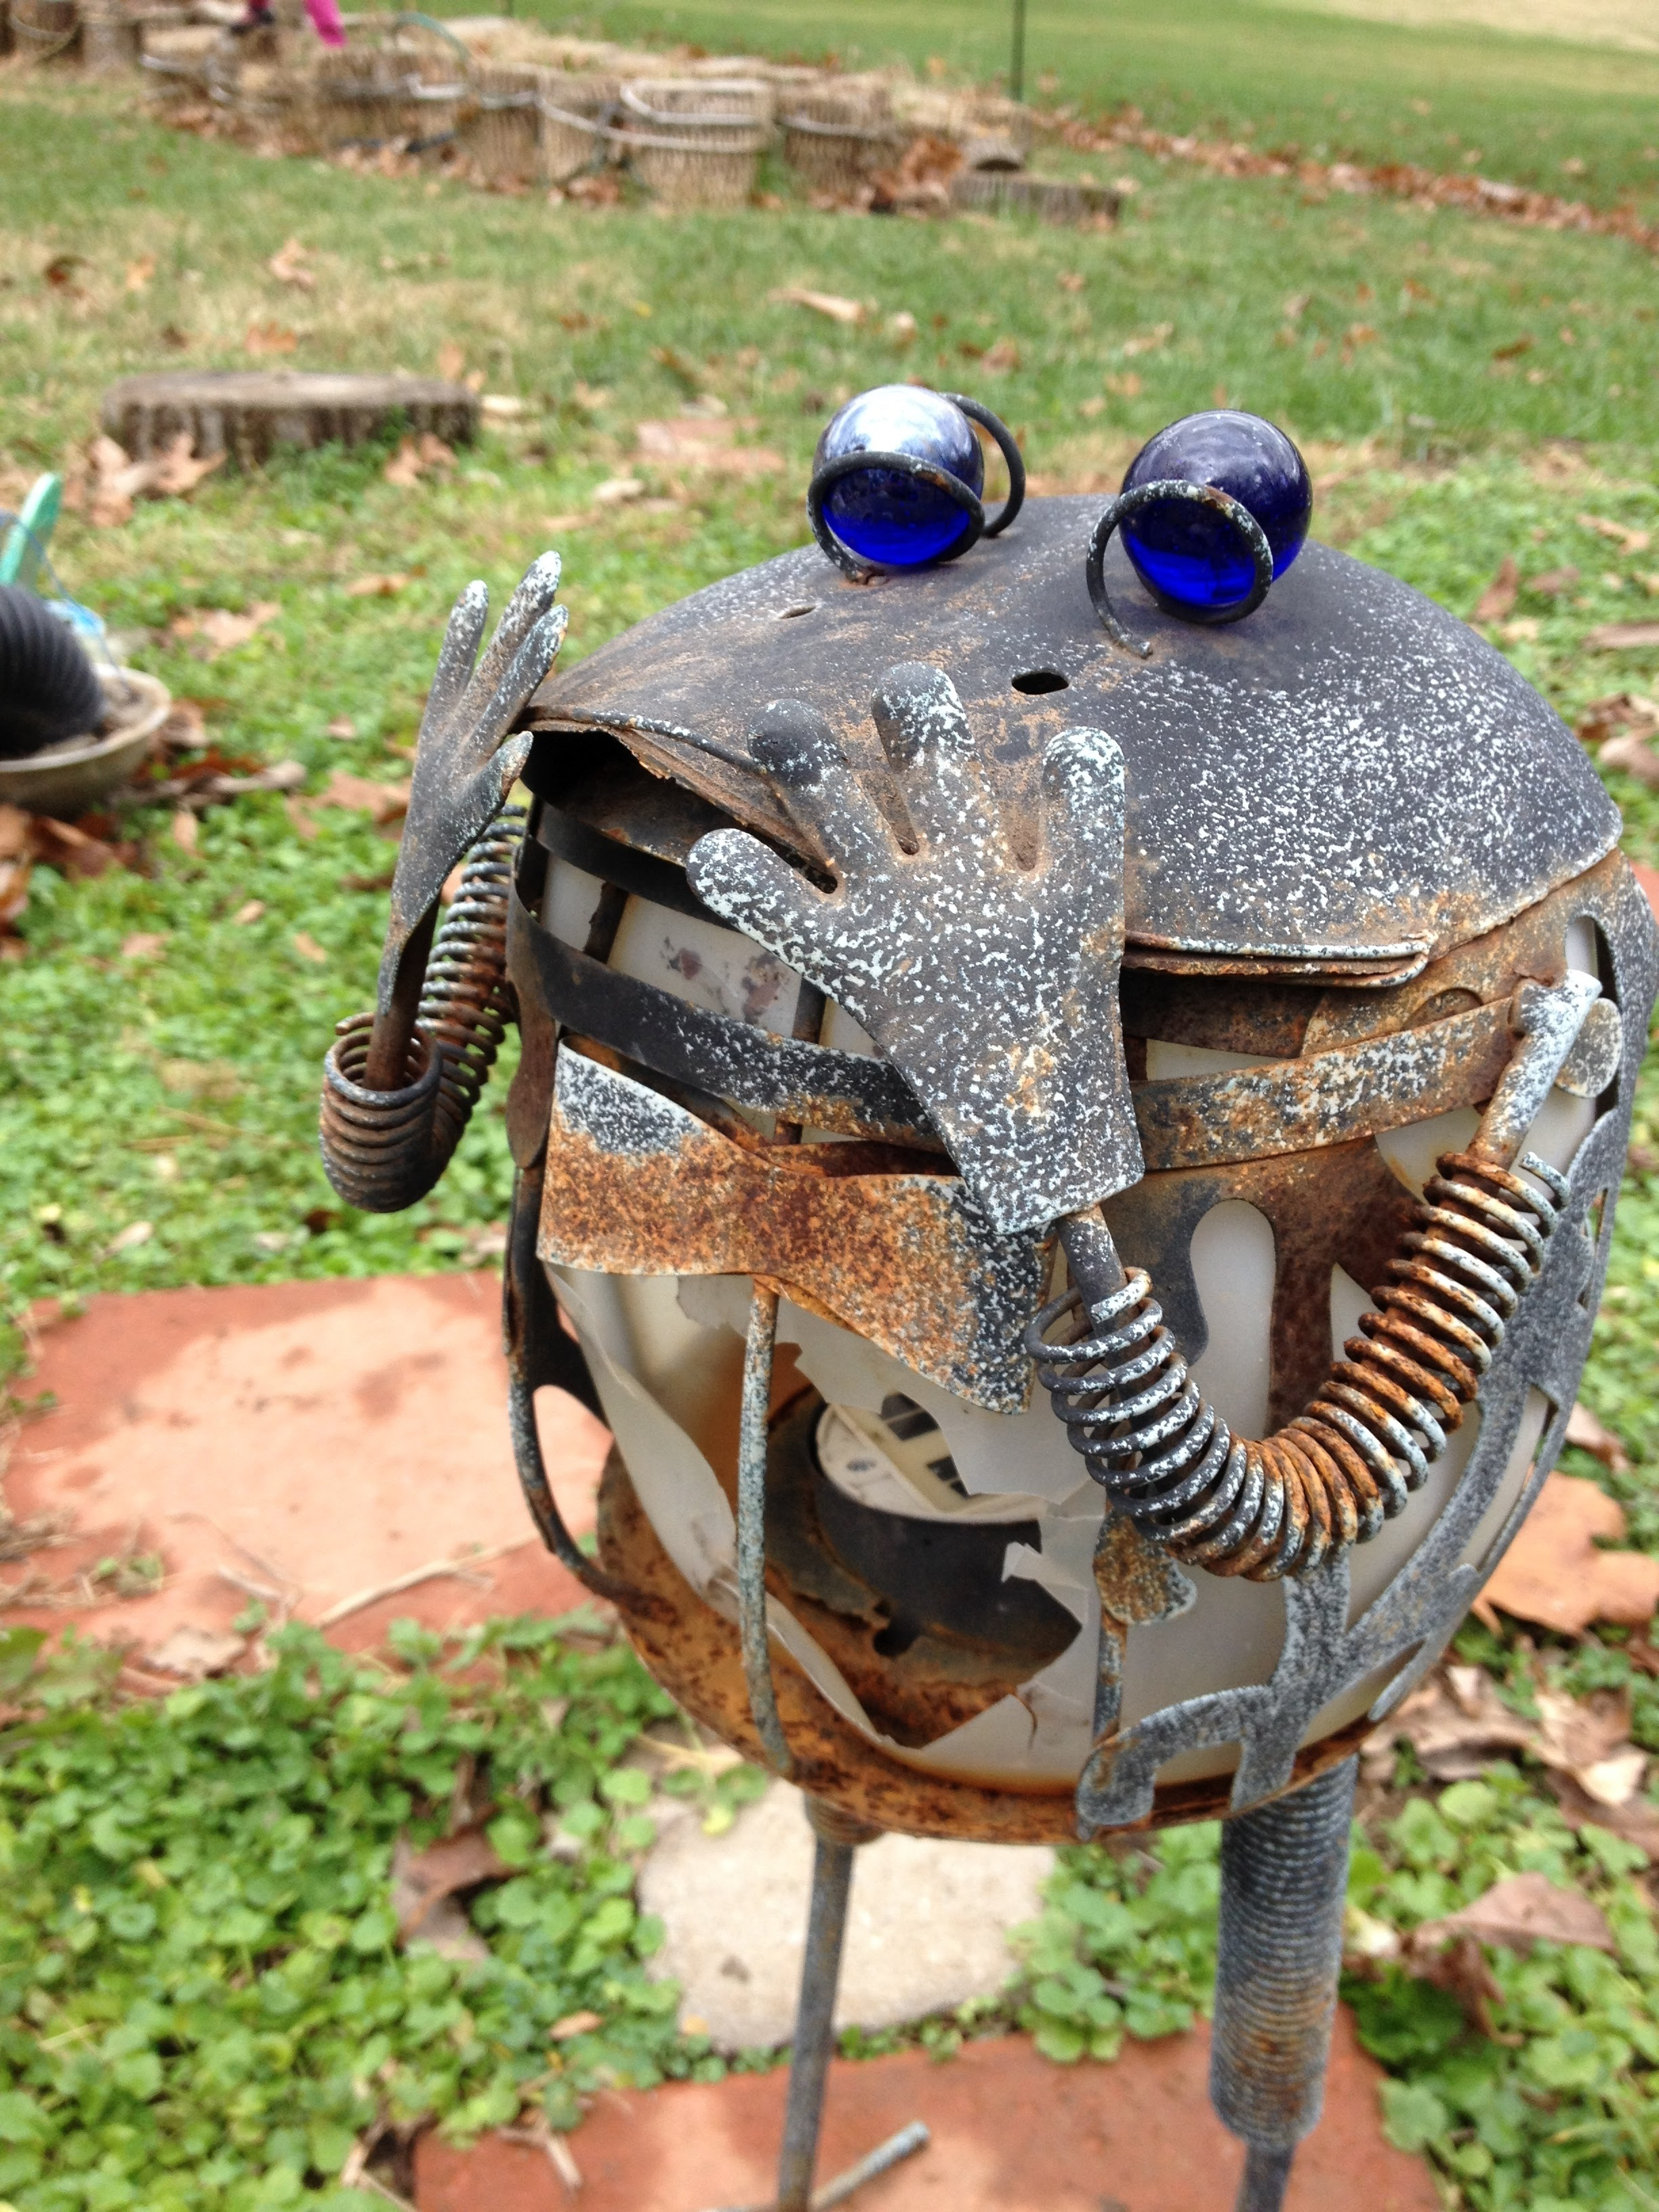 Frog statues in the garden aren't just cosmetic. They are light enough that almost any student can pick them up and move them. Being encouraged to decorate the garden before or after tending to the plants can engender a feeling of attachment to the garden and the plants therein.